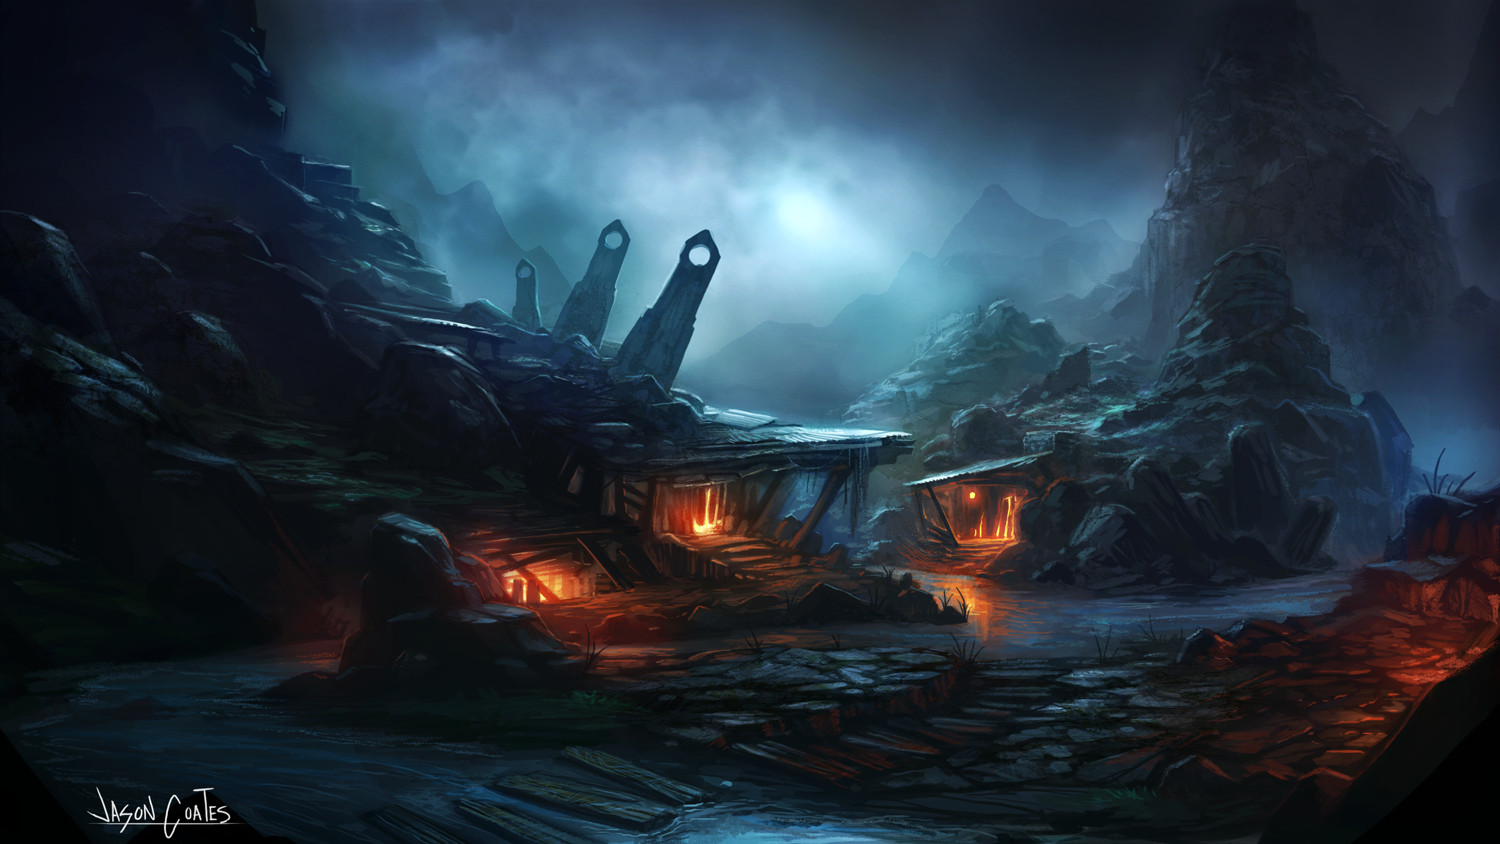 Best ideas about Fantasy Landscape Art . Save or Pin Fantasy Landscape by AtTheSpeed on Newgrounds Now.